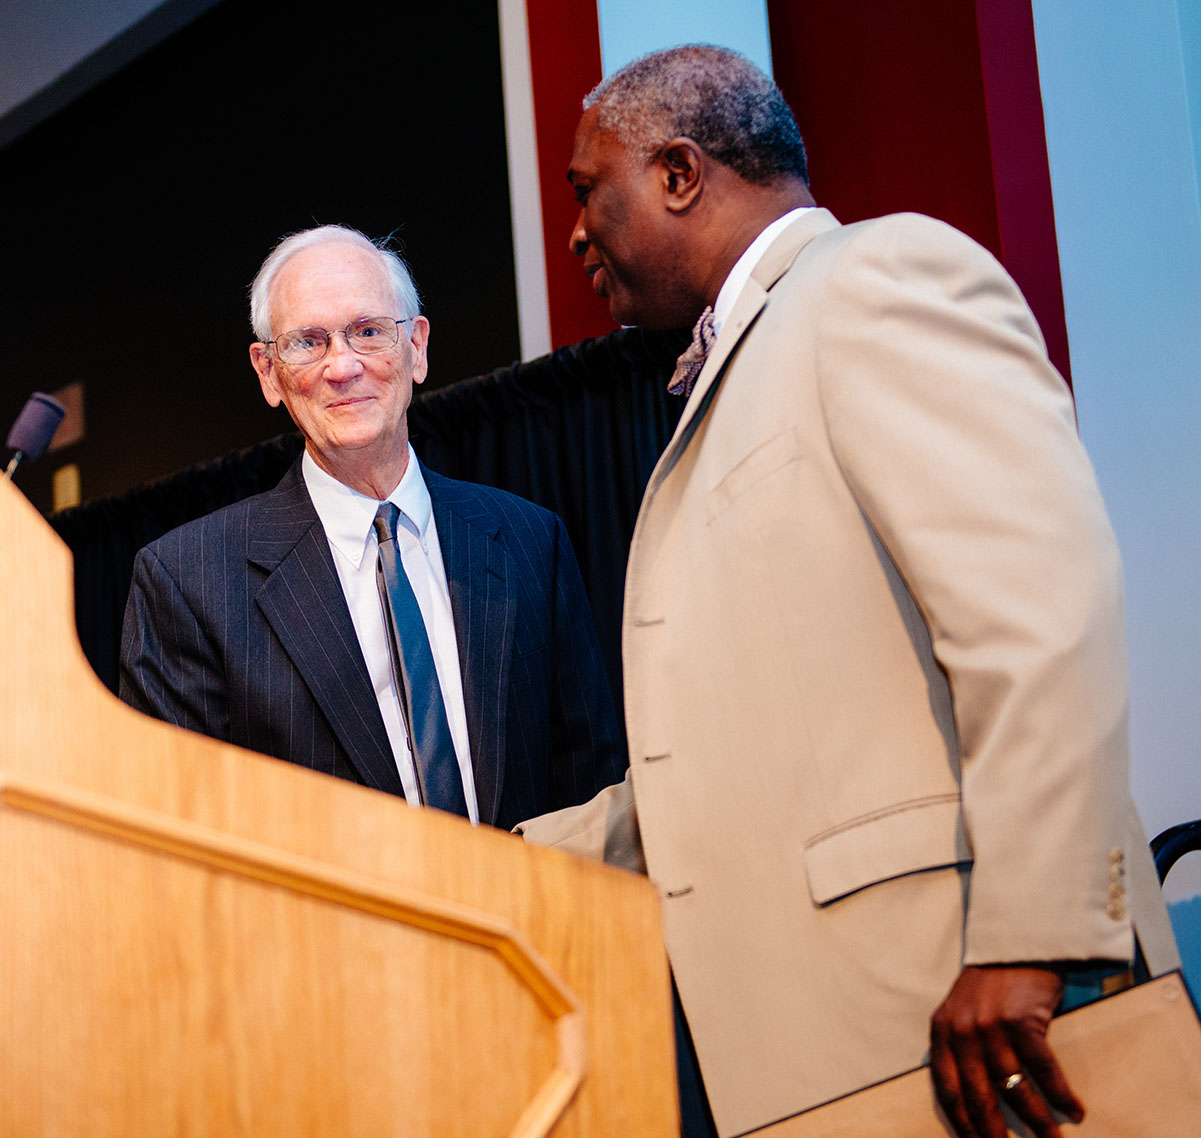 Dr. Samory T. Pruitt congratulates Dr. Ed Mullins on his award.